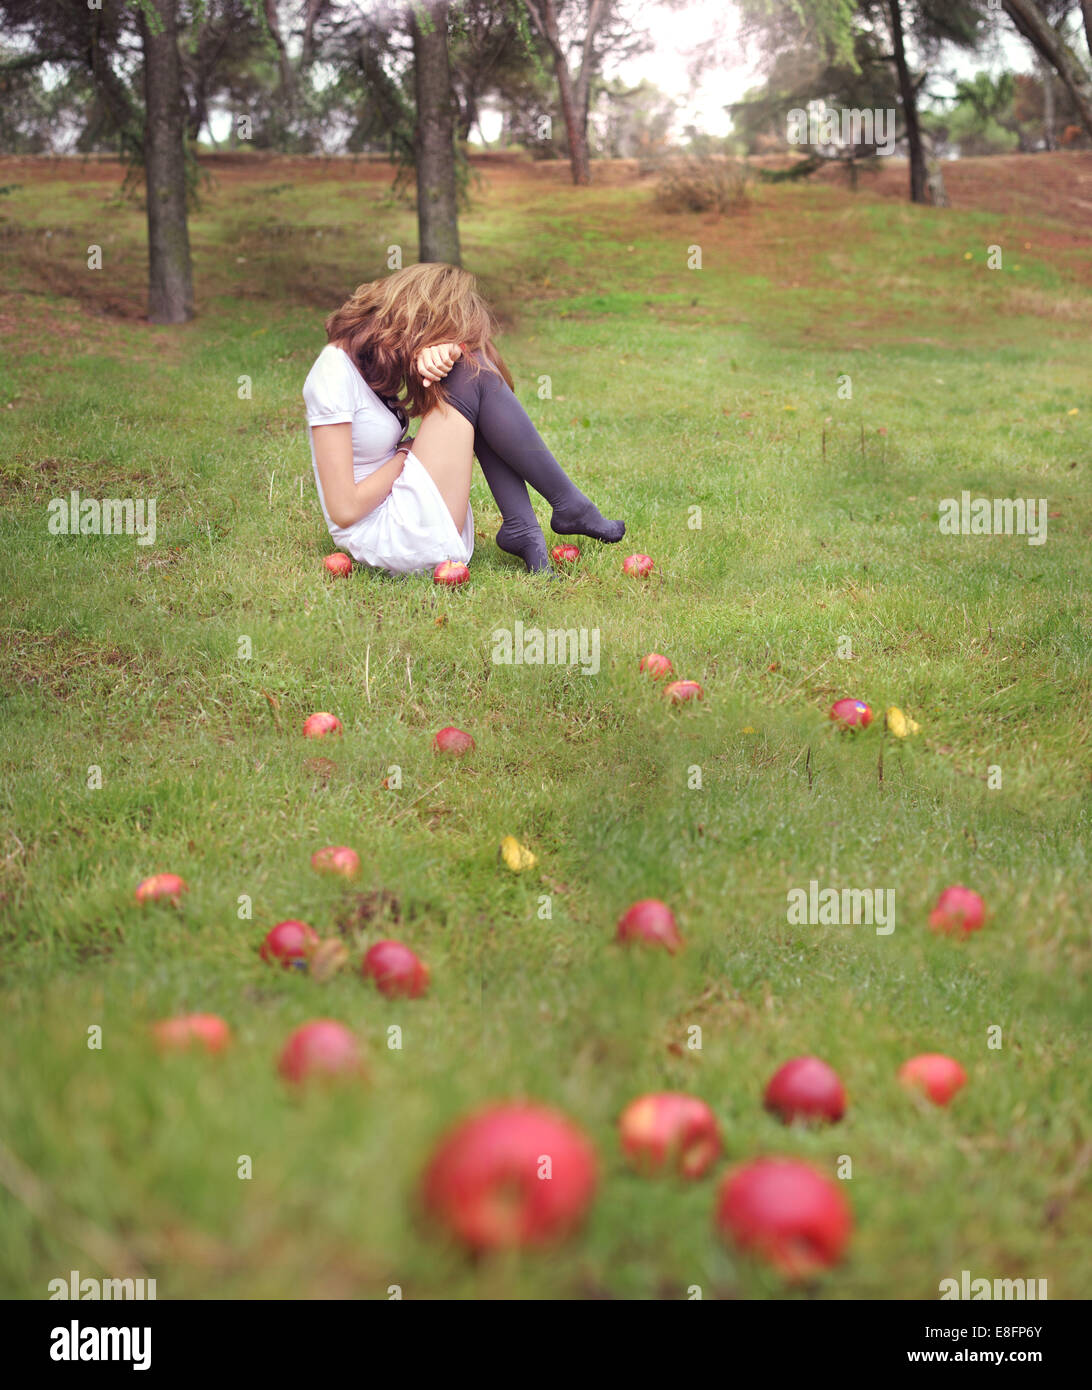 Woman sitting in a garden next to fallen apples, Spain Stock Photo